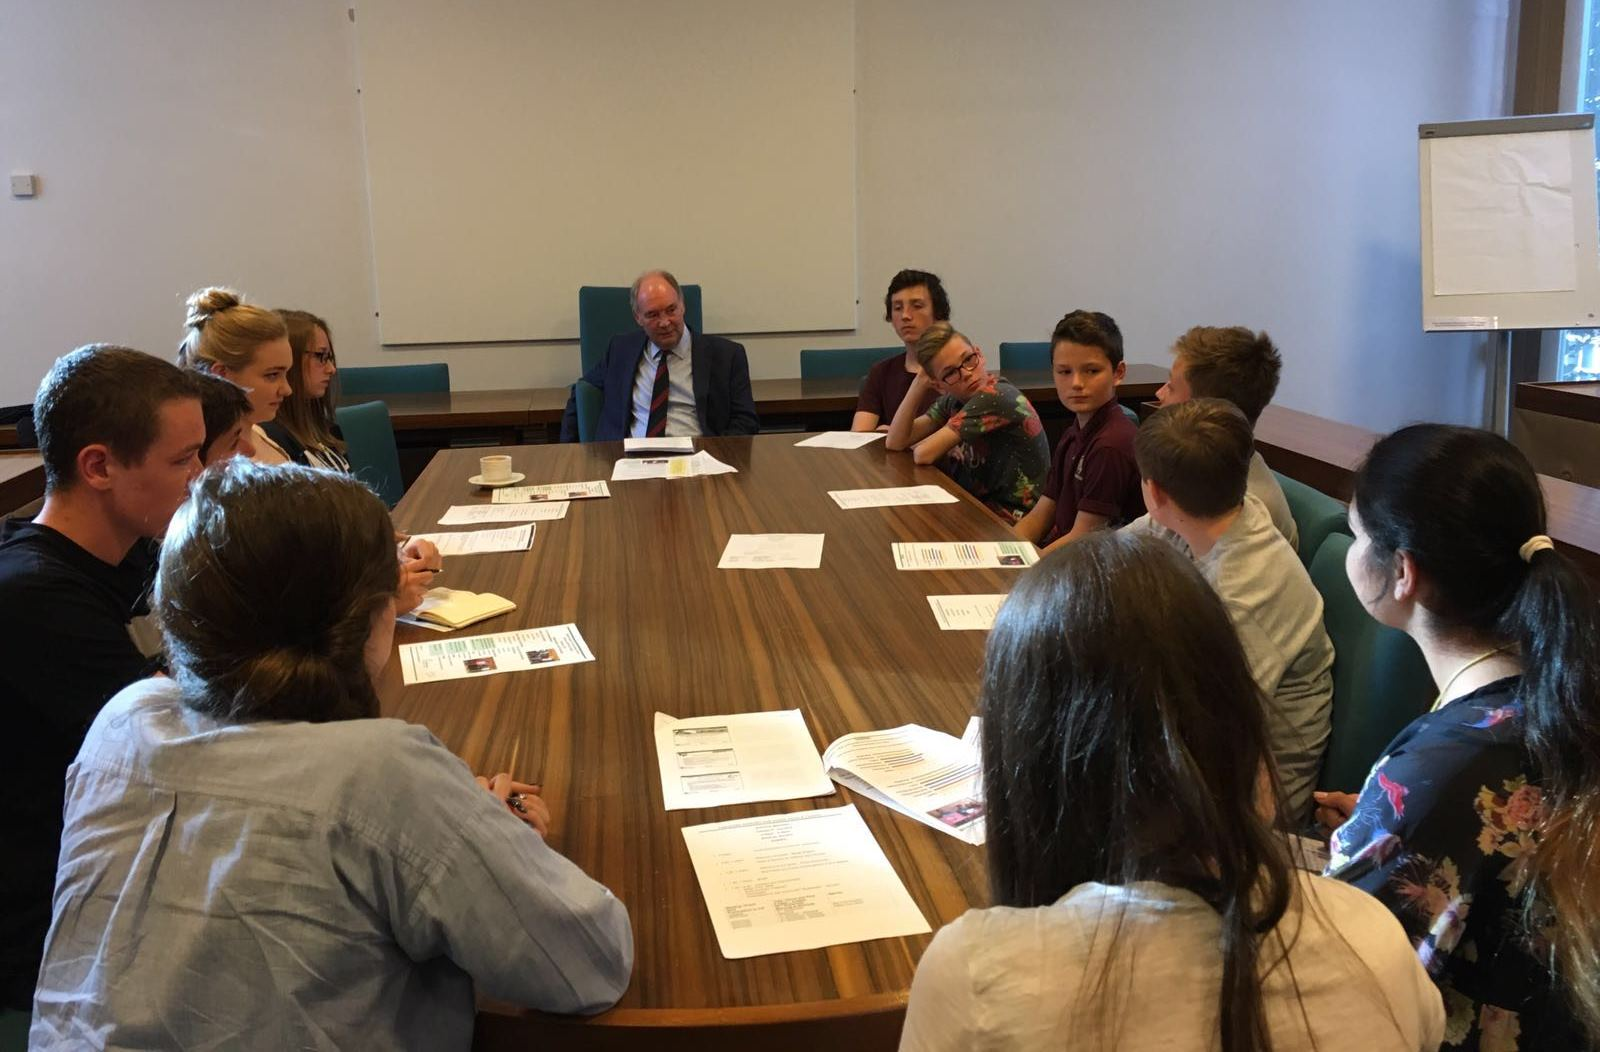 The PCC meets the Warwickshire Youth Parliament